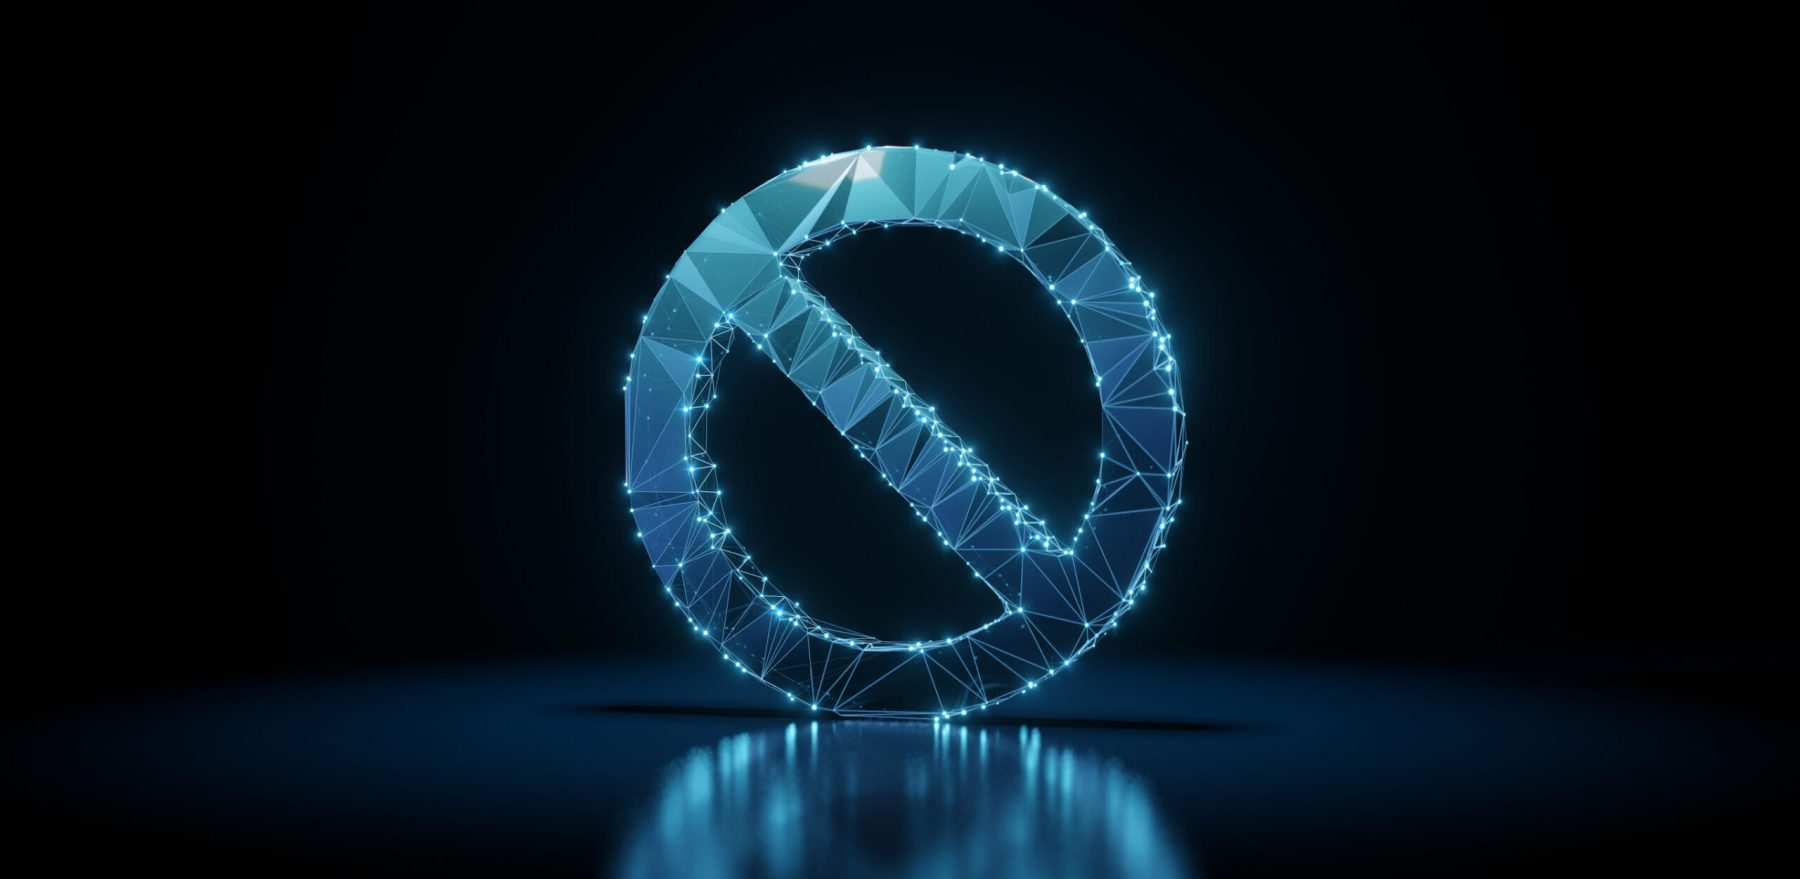 3d rendering wireframe digital techno neon glowing symbol of circle ban sign with shining dots on black background with blured reflection on floor